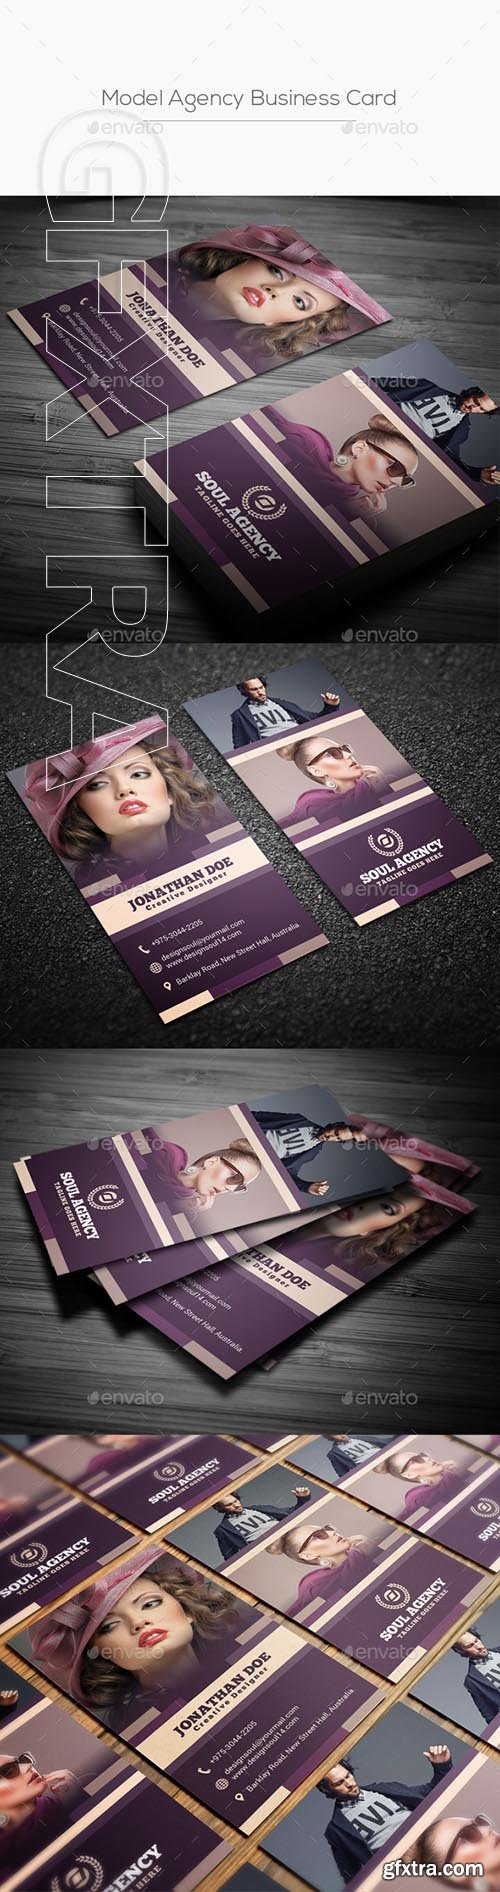 GraphicRiver - Model Agency Business Card 21895014